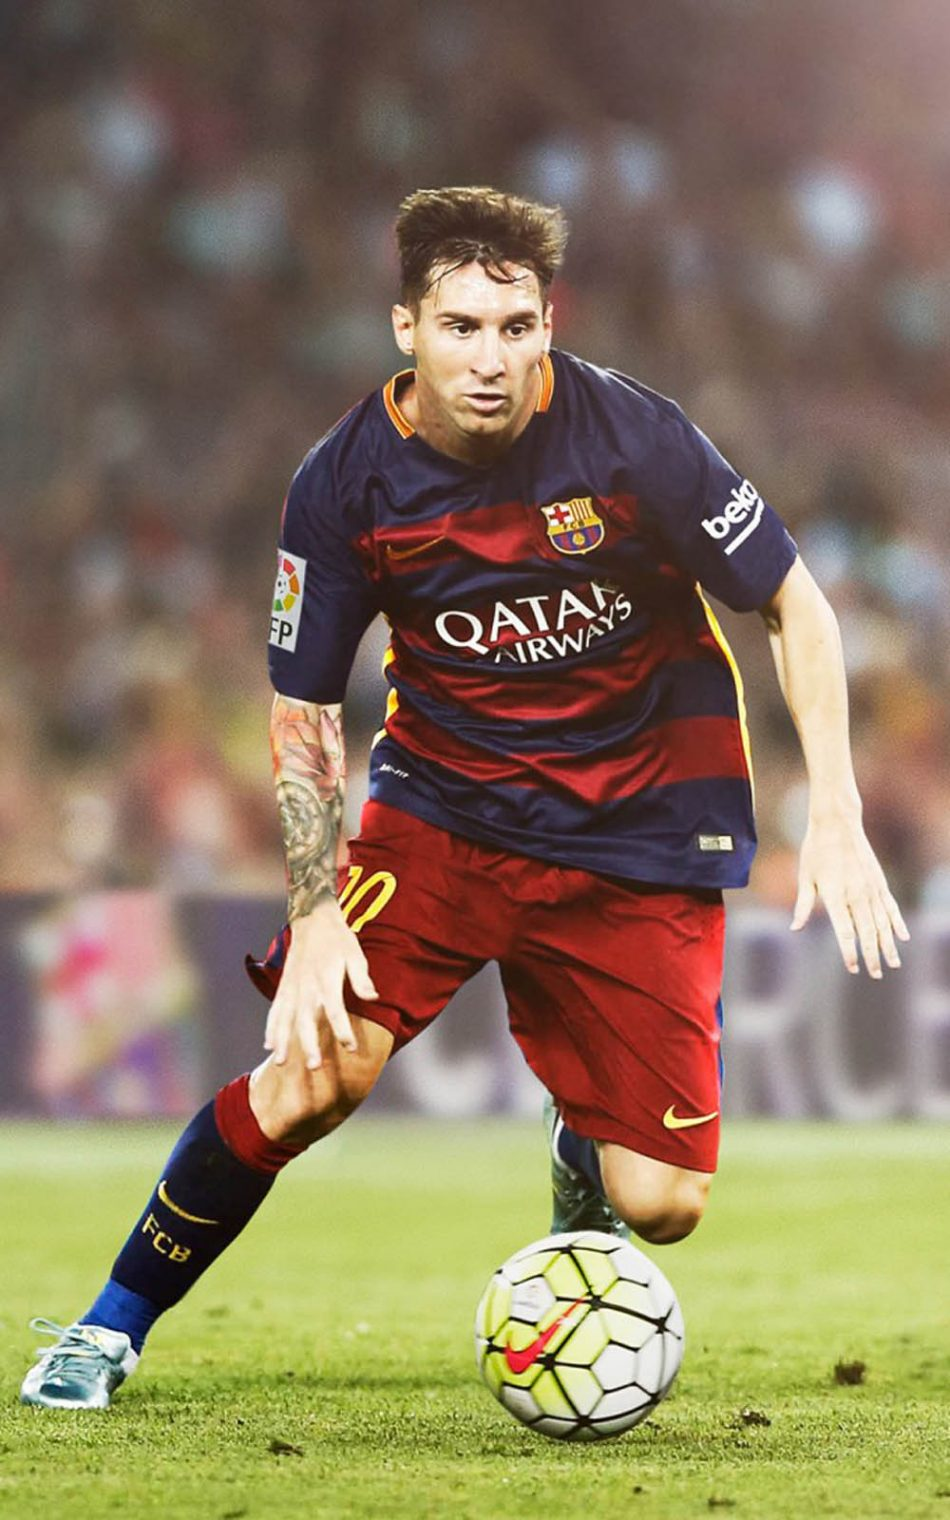 Lionel Messi Playing For FC Barcelona 4K Ultra HD Mobile 950x1520